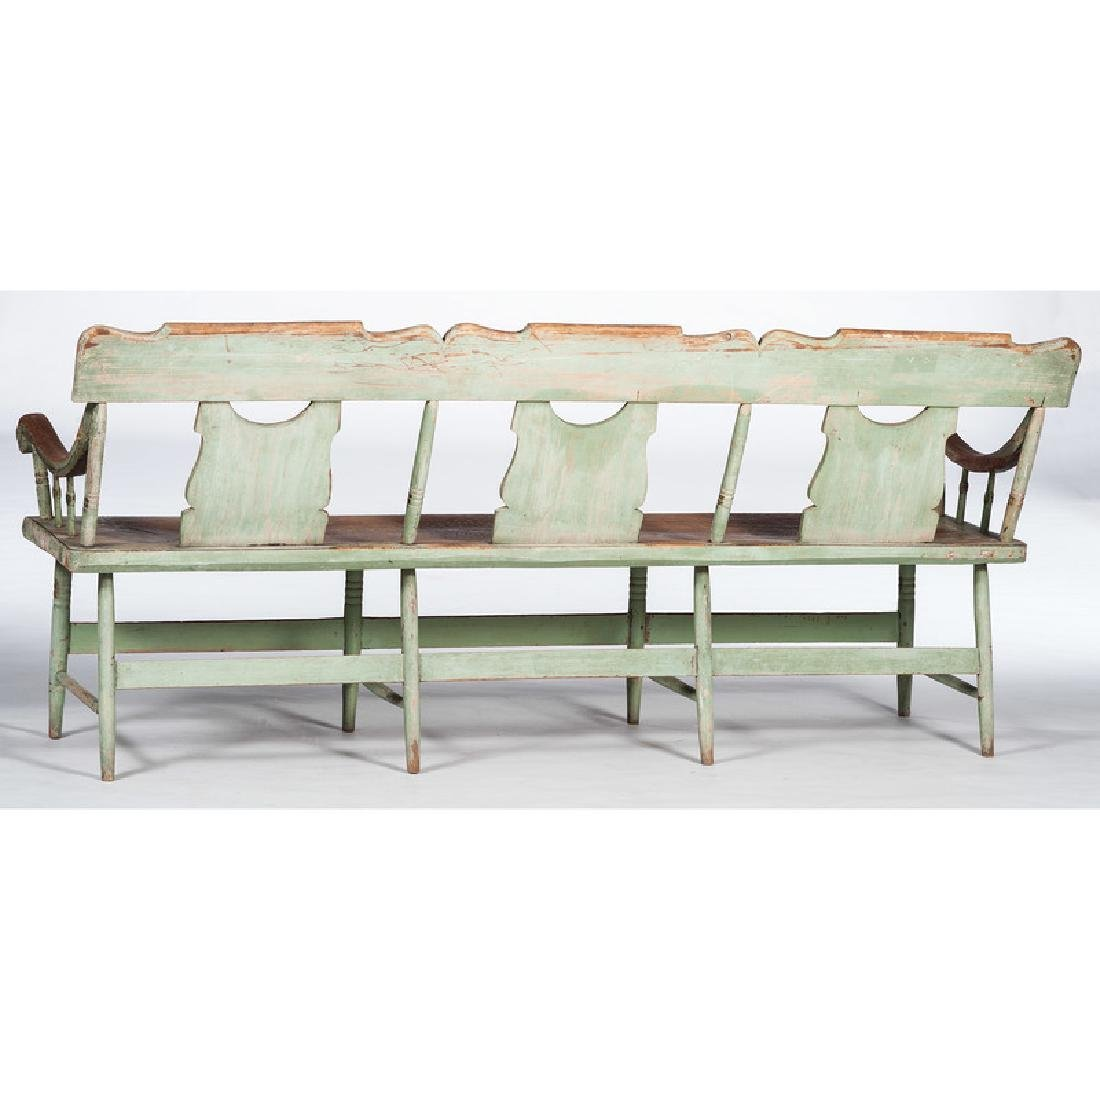 Painted Pennsylvania Settle Bench - 3